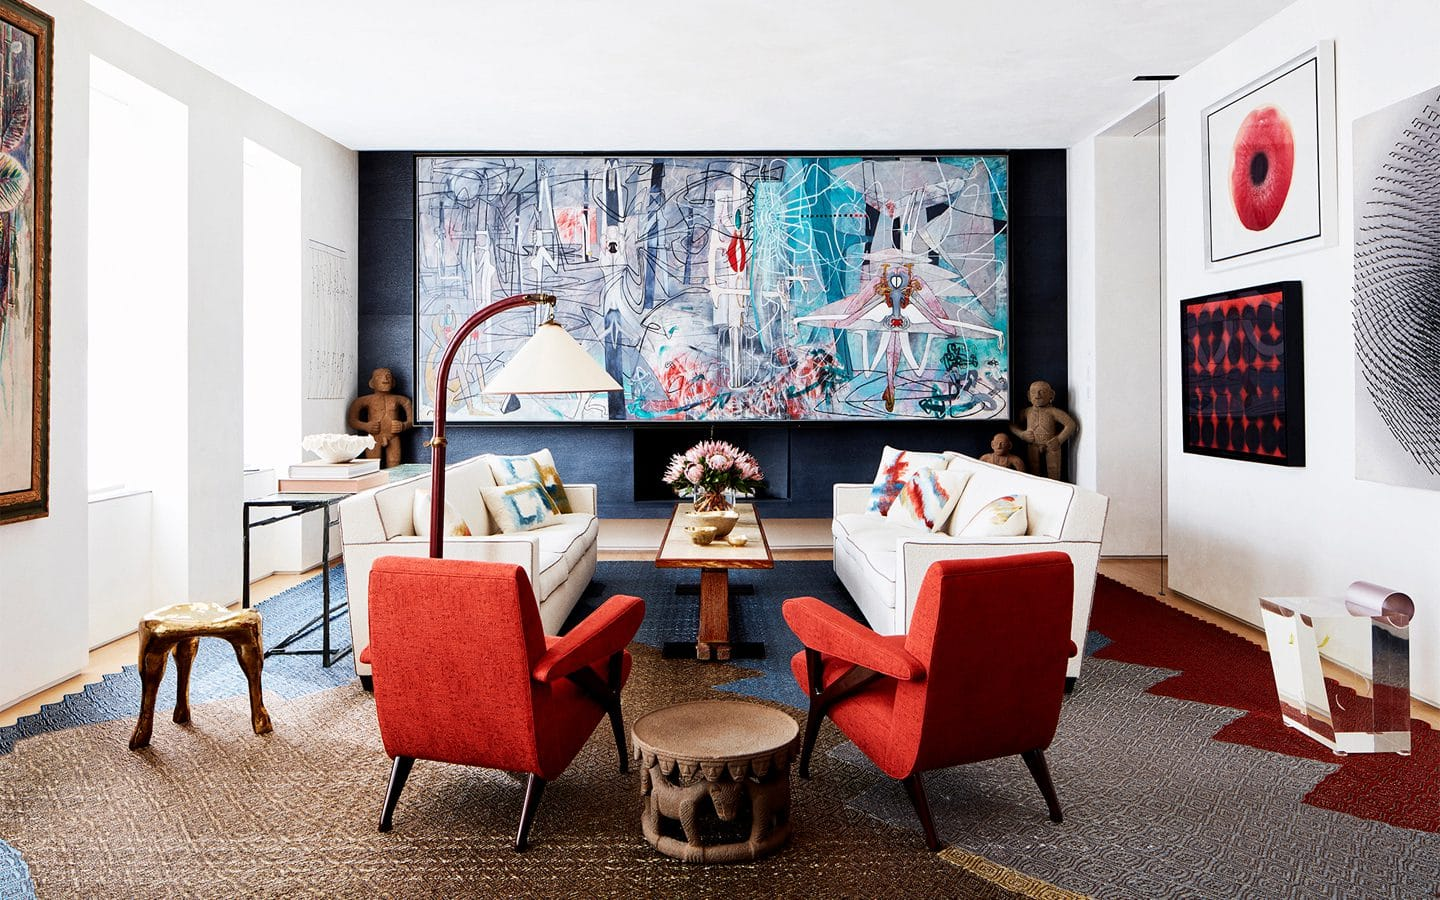 Living room with red couch and large abstract painting designed by Amy Lau for Park Avenue Triplex.